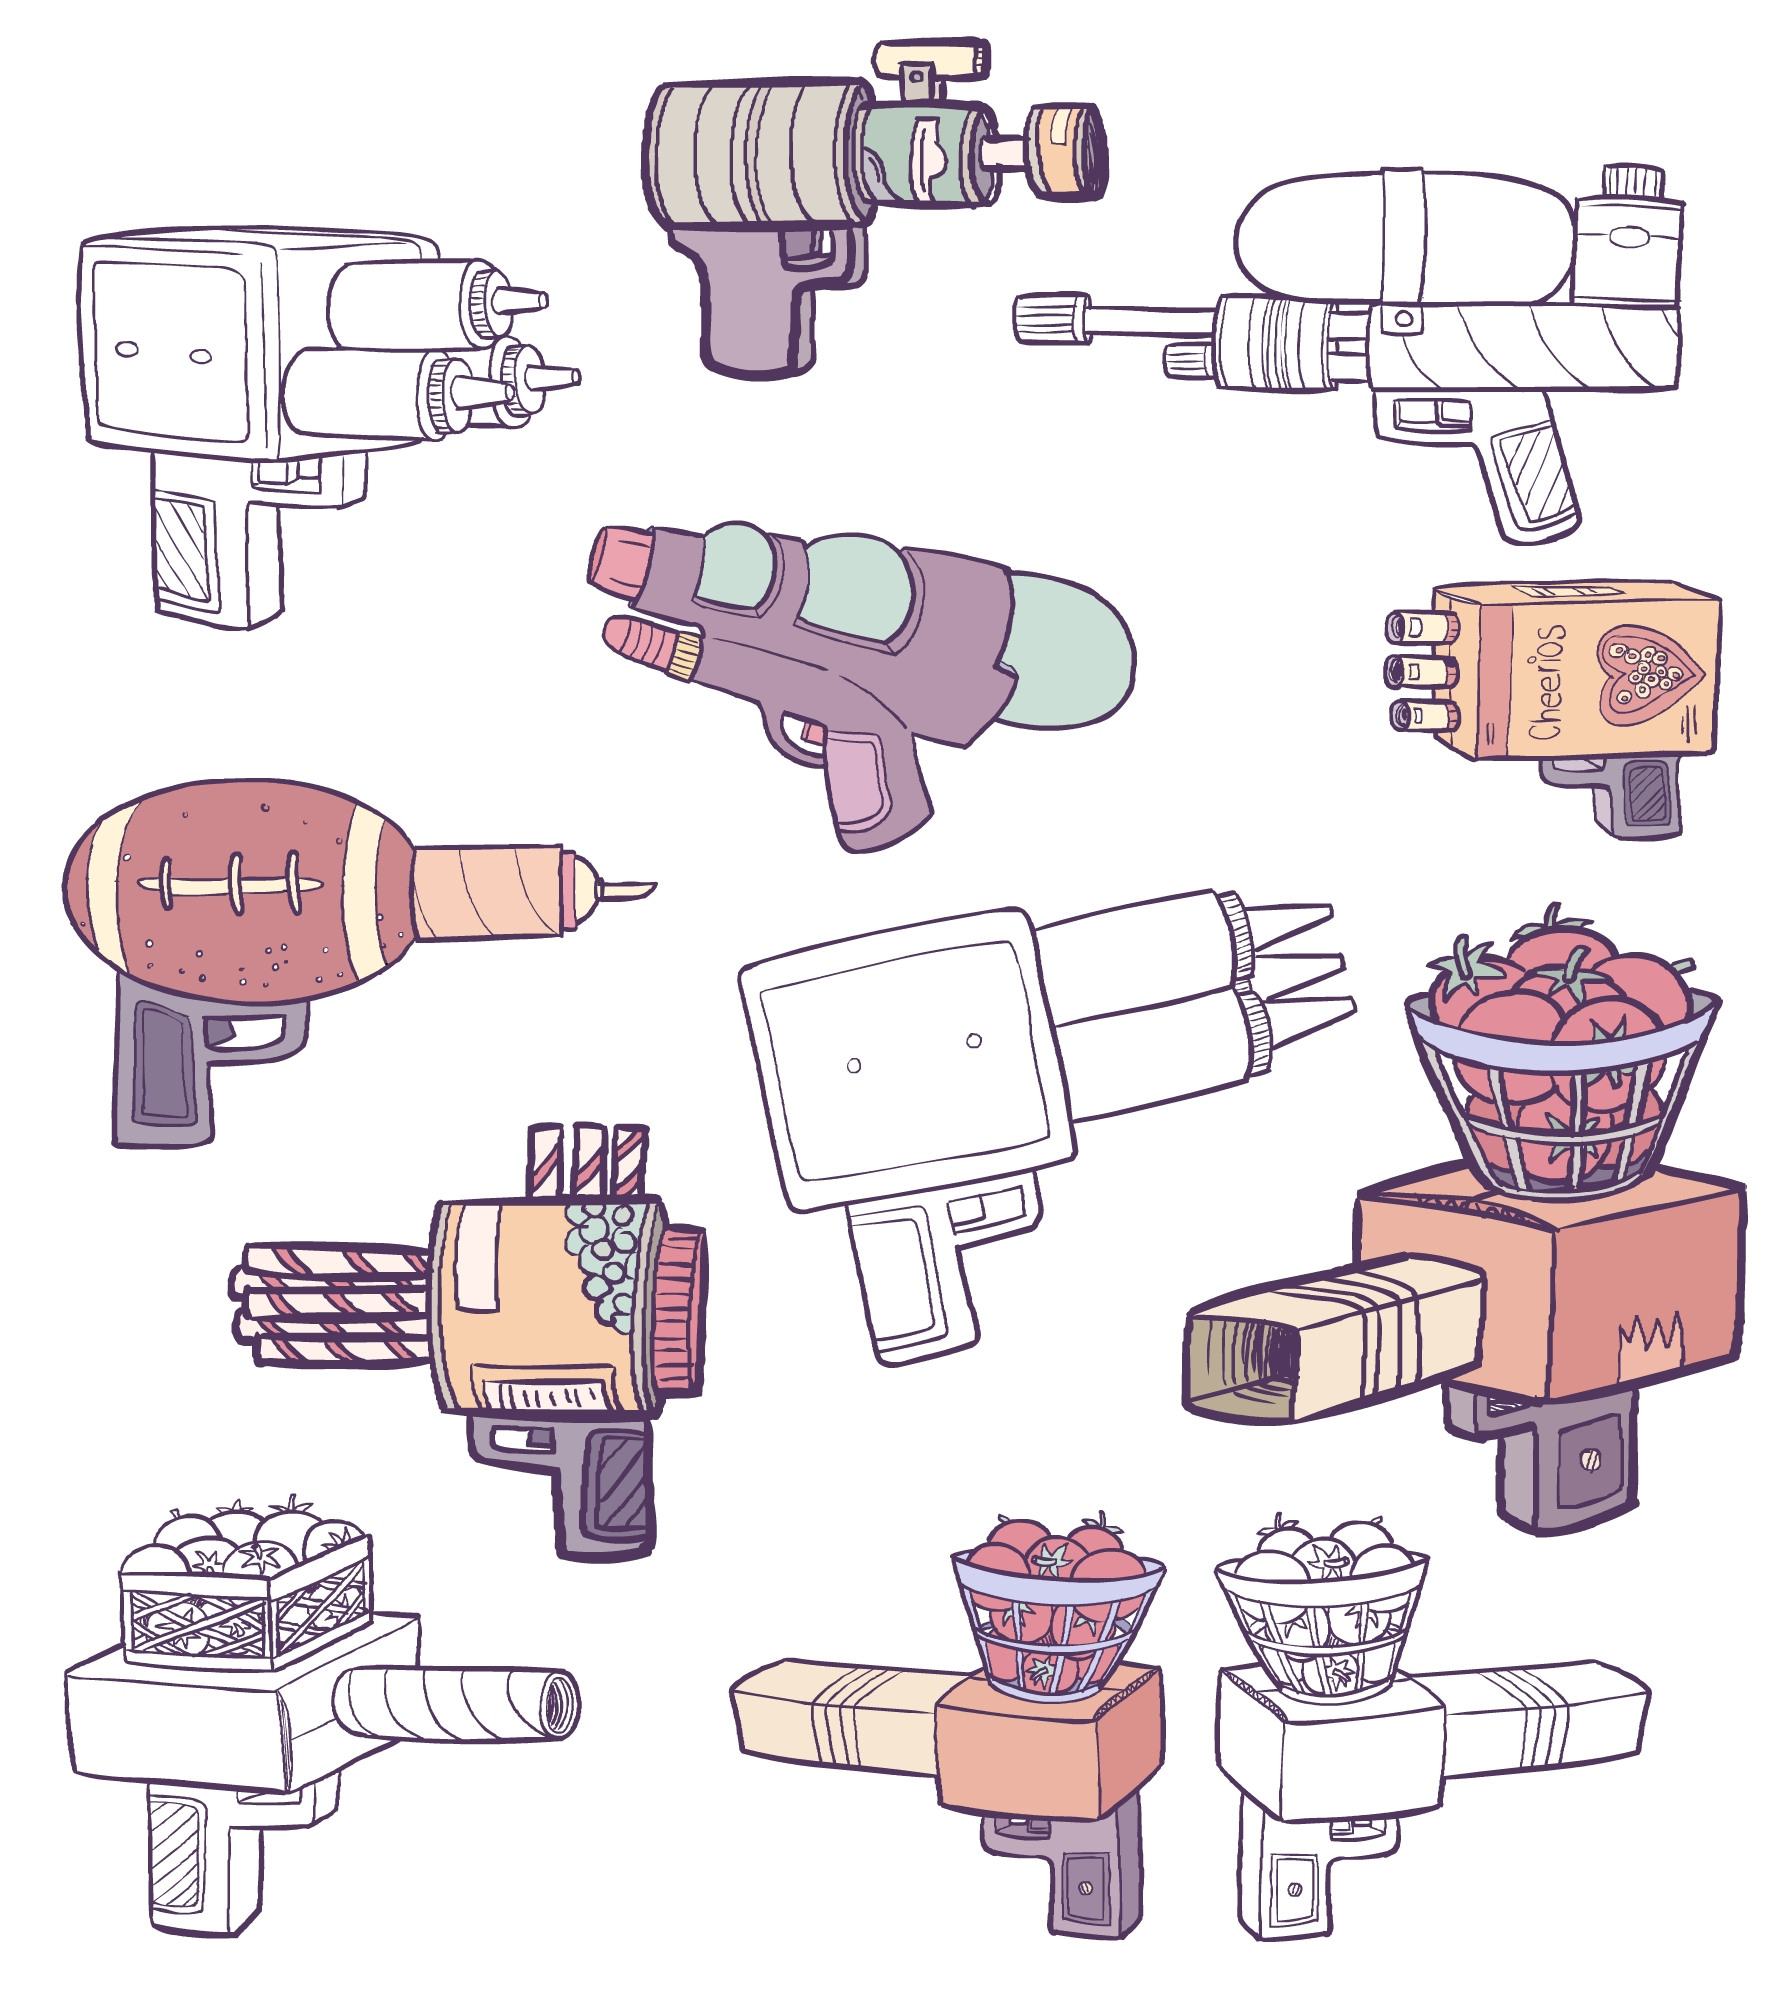 Weapon design_v03_4.jpg